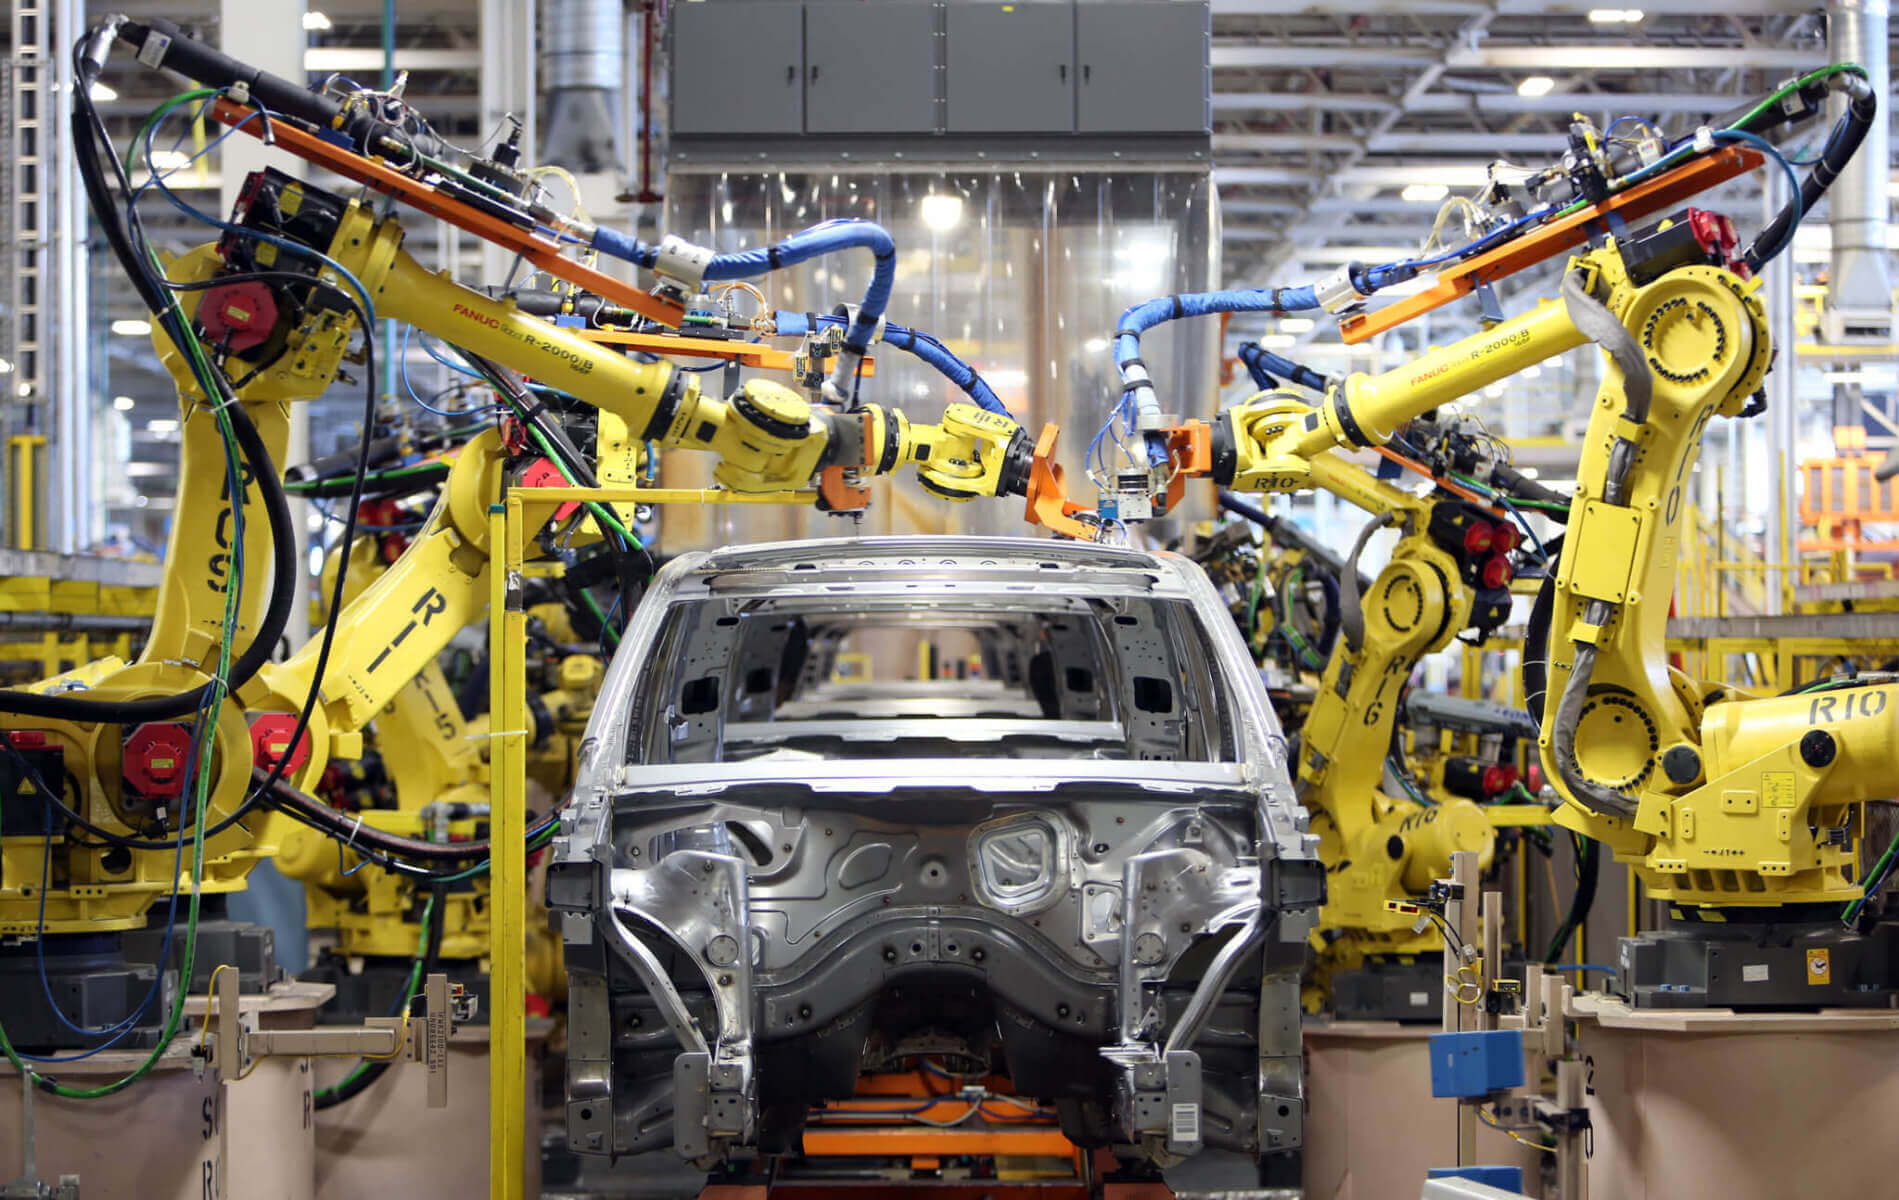 An automobile assembly line with expensive machines financed through C & I lending